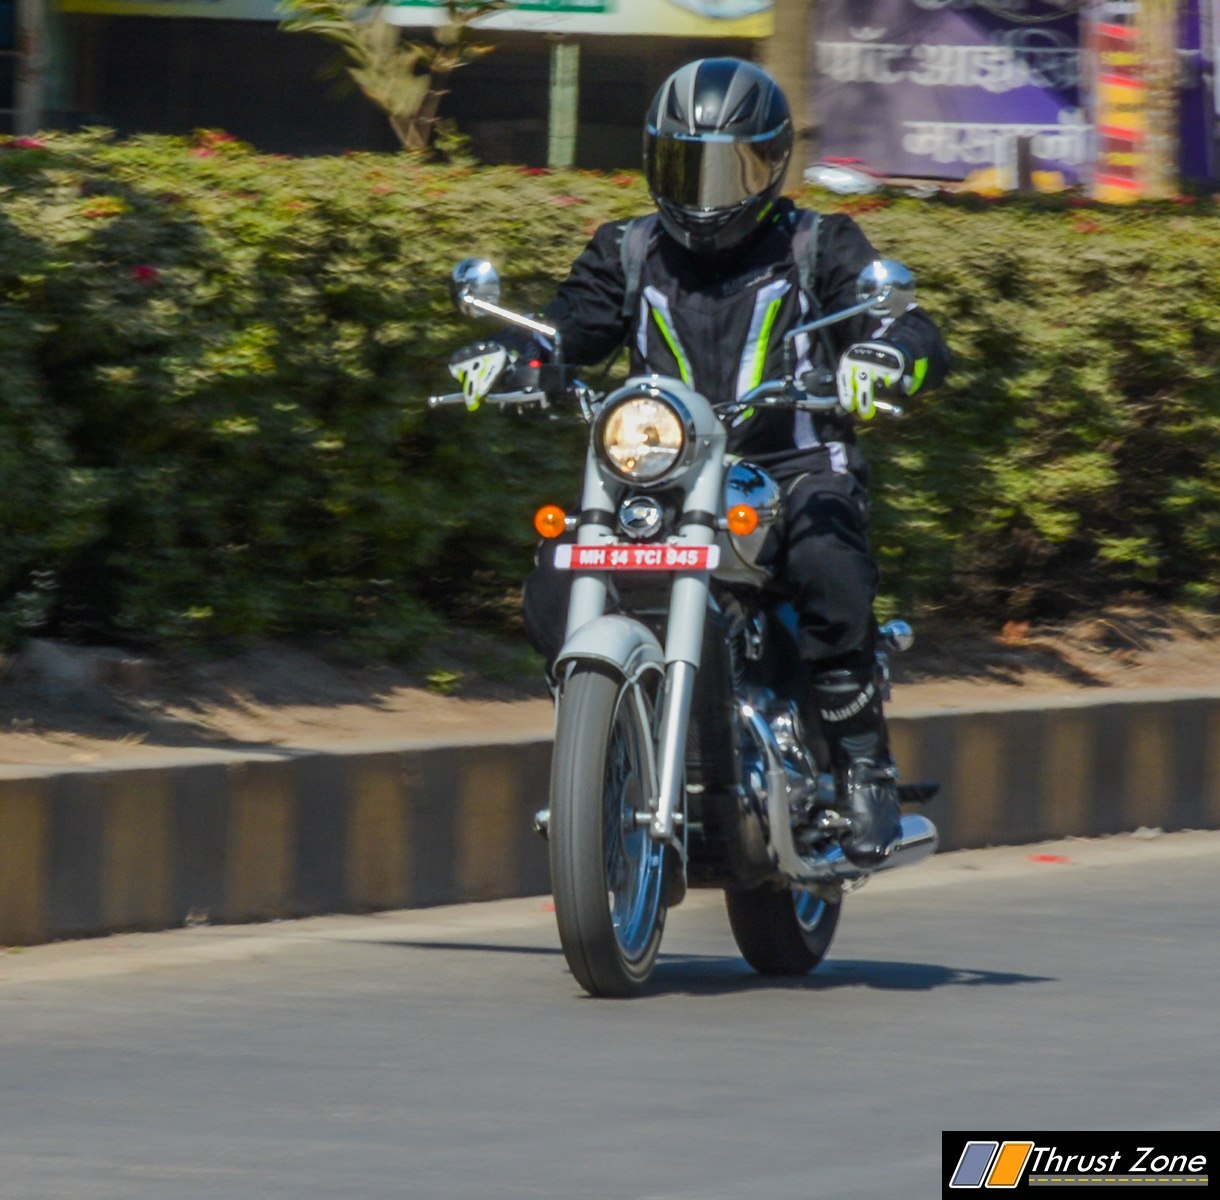 https://www.thrustzone.com/wp-content/uploads/2019/01/jawa-300-classic-india-review-8.jpg